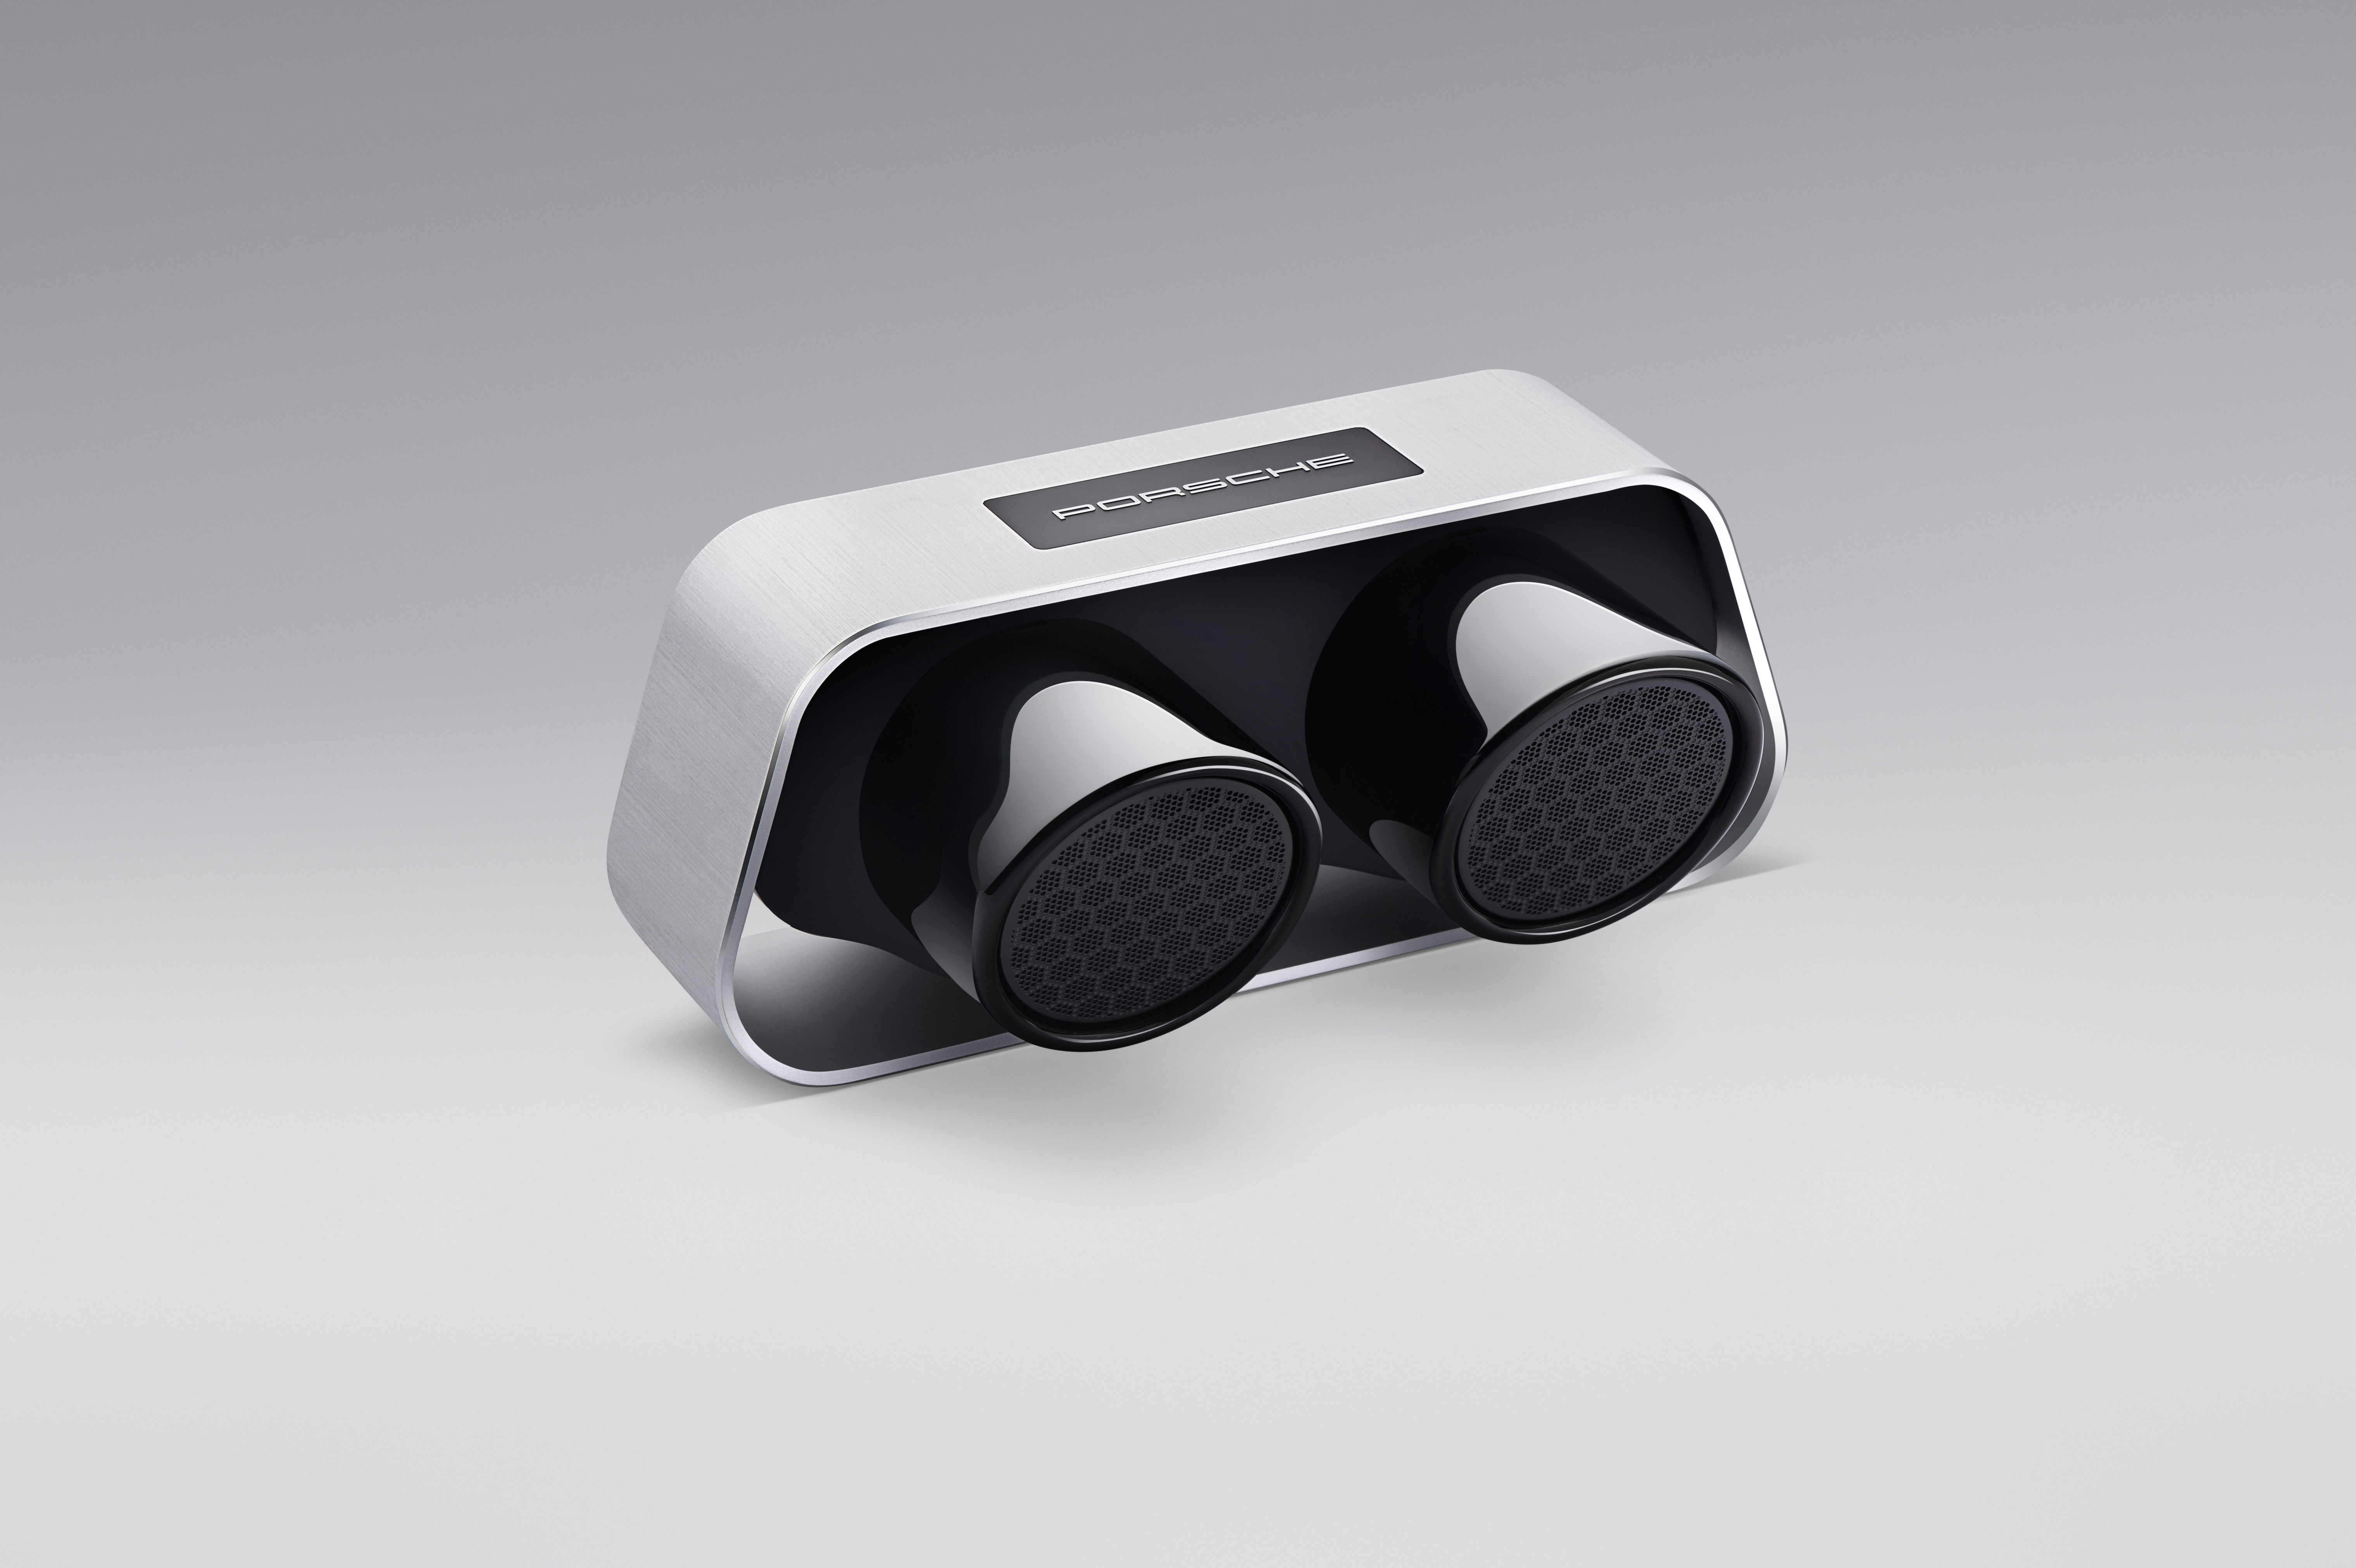 The original tailpipe from a 911 GT3 as a high- end Bluetooth loudspeaker. Yes please. Has up to 24 hours of battery life. Head to shop2. porsche.com/uk